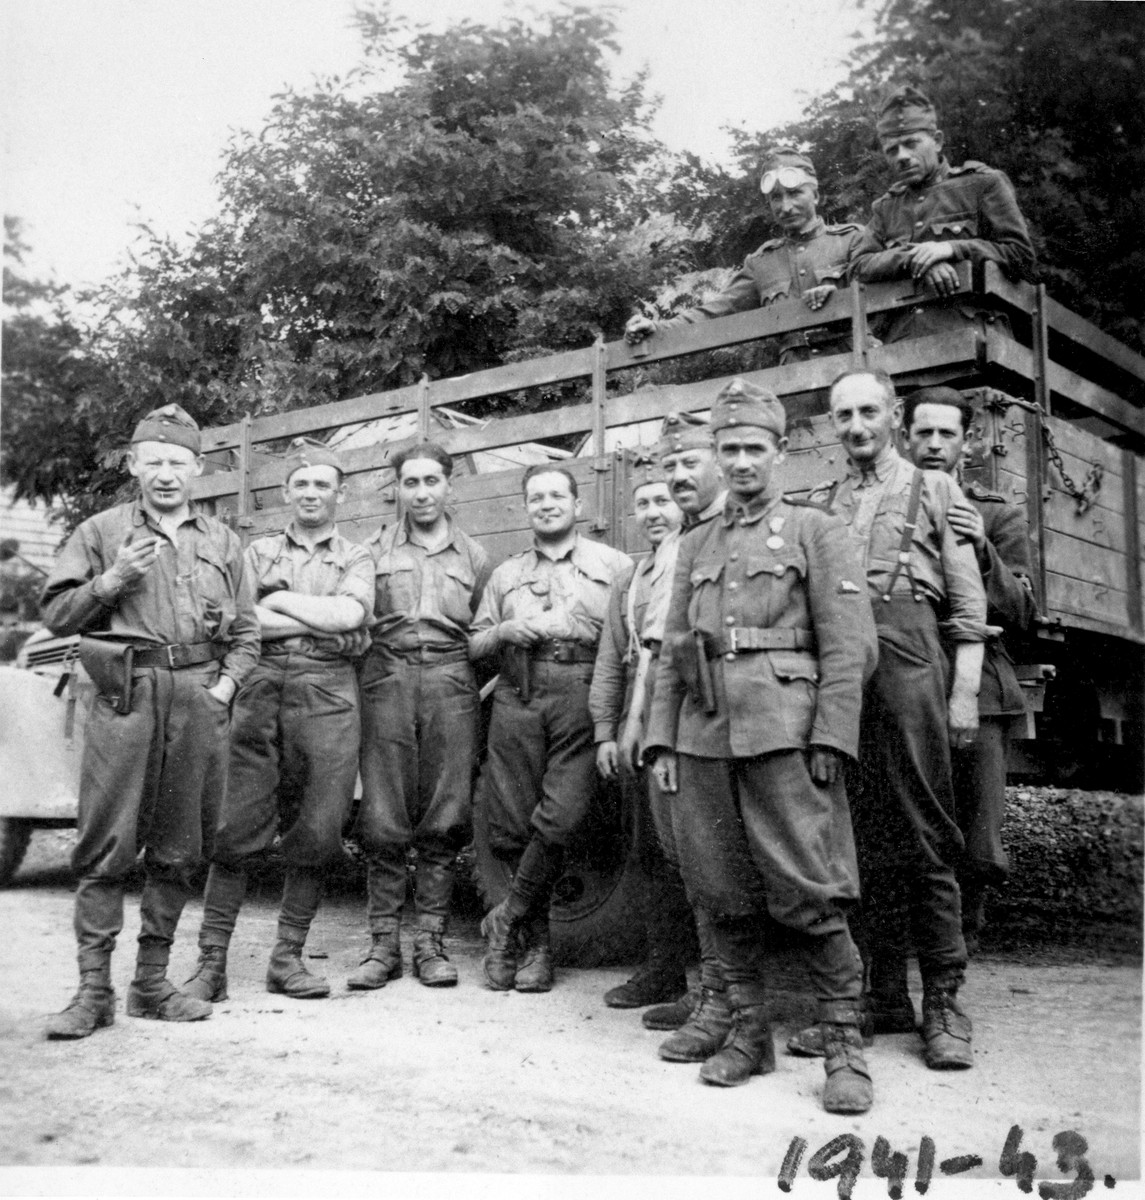 A unit of Hungarian soldiers that includes a Jew from Budapest, poses in front of a truck.  Among those pictured is Gyula Spitz (second from the left).